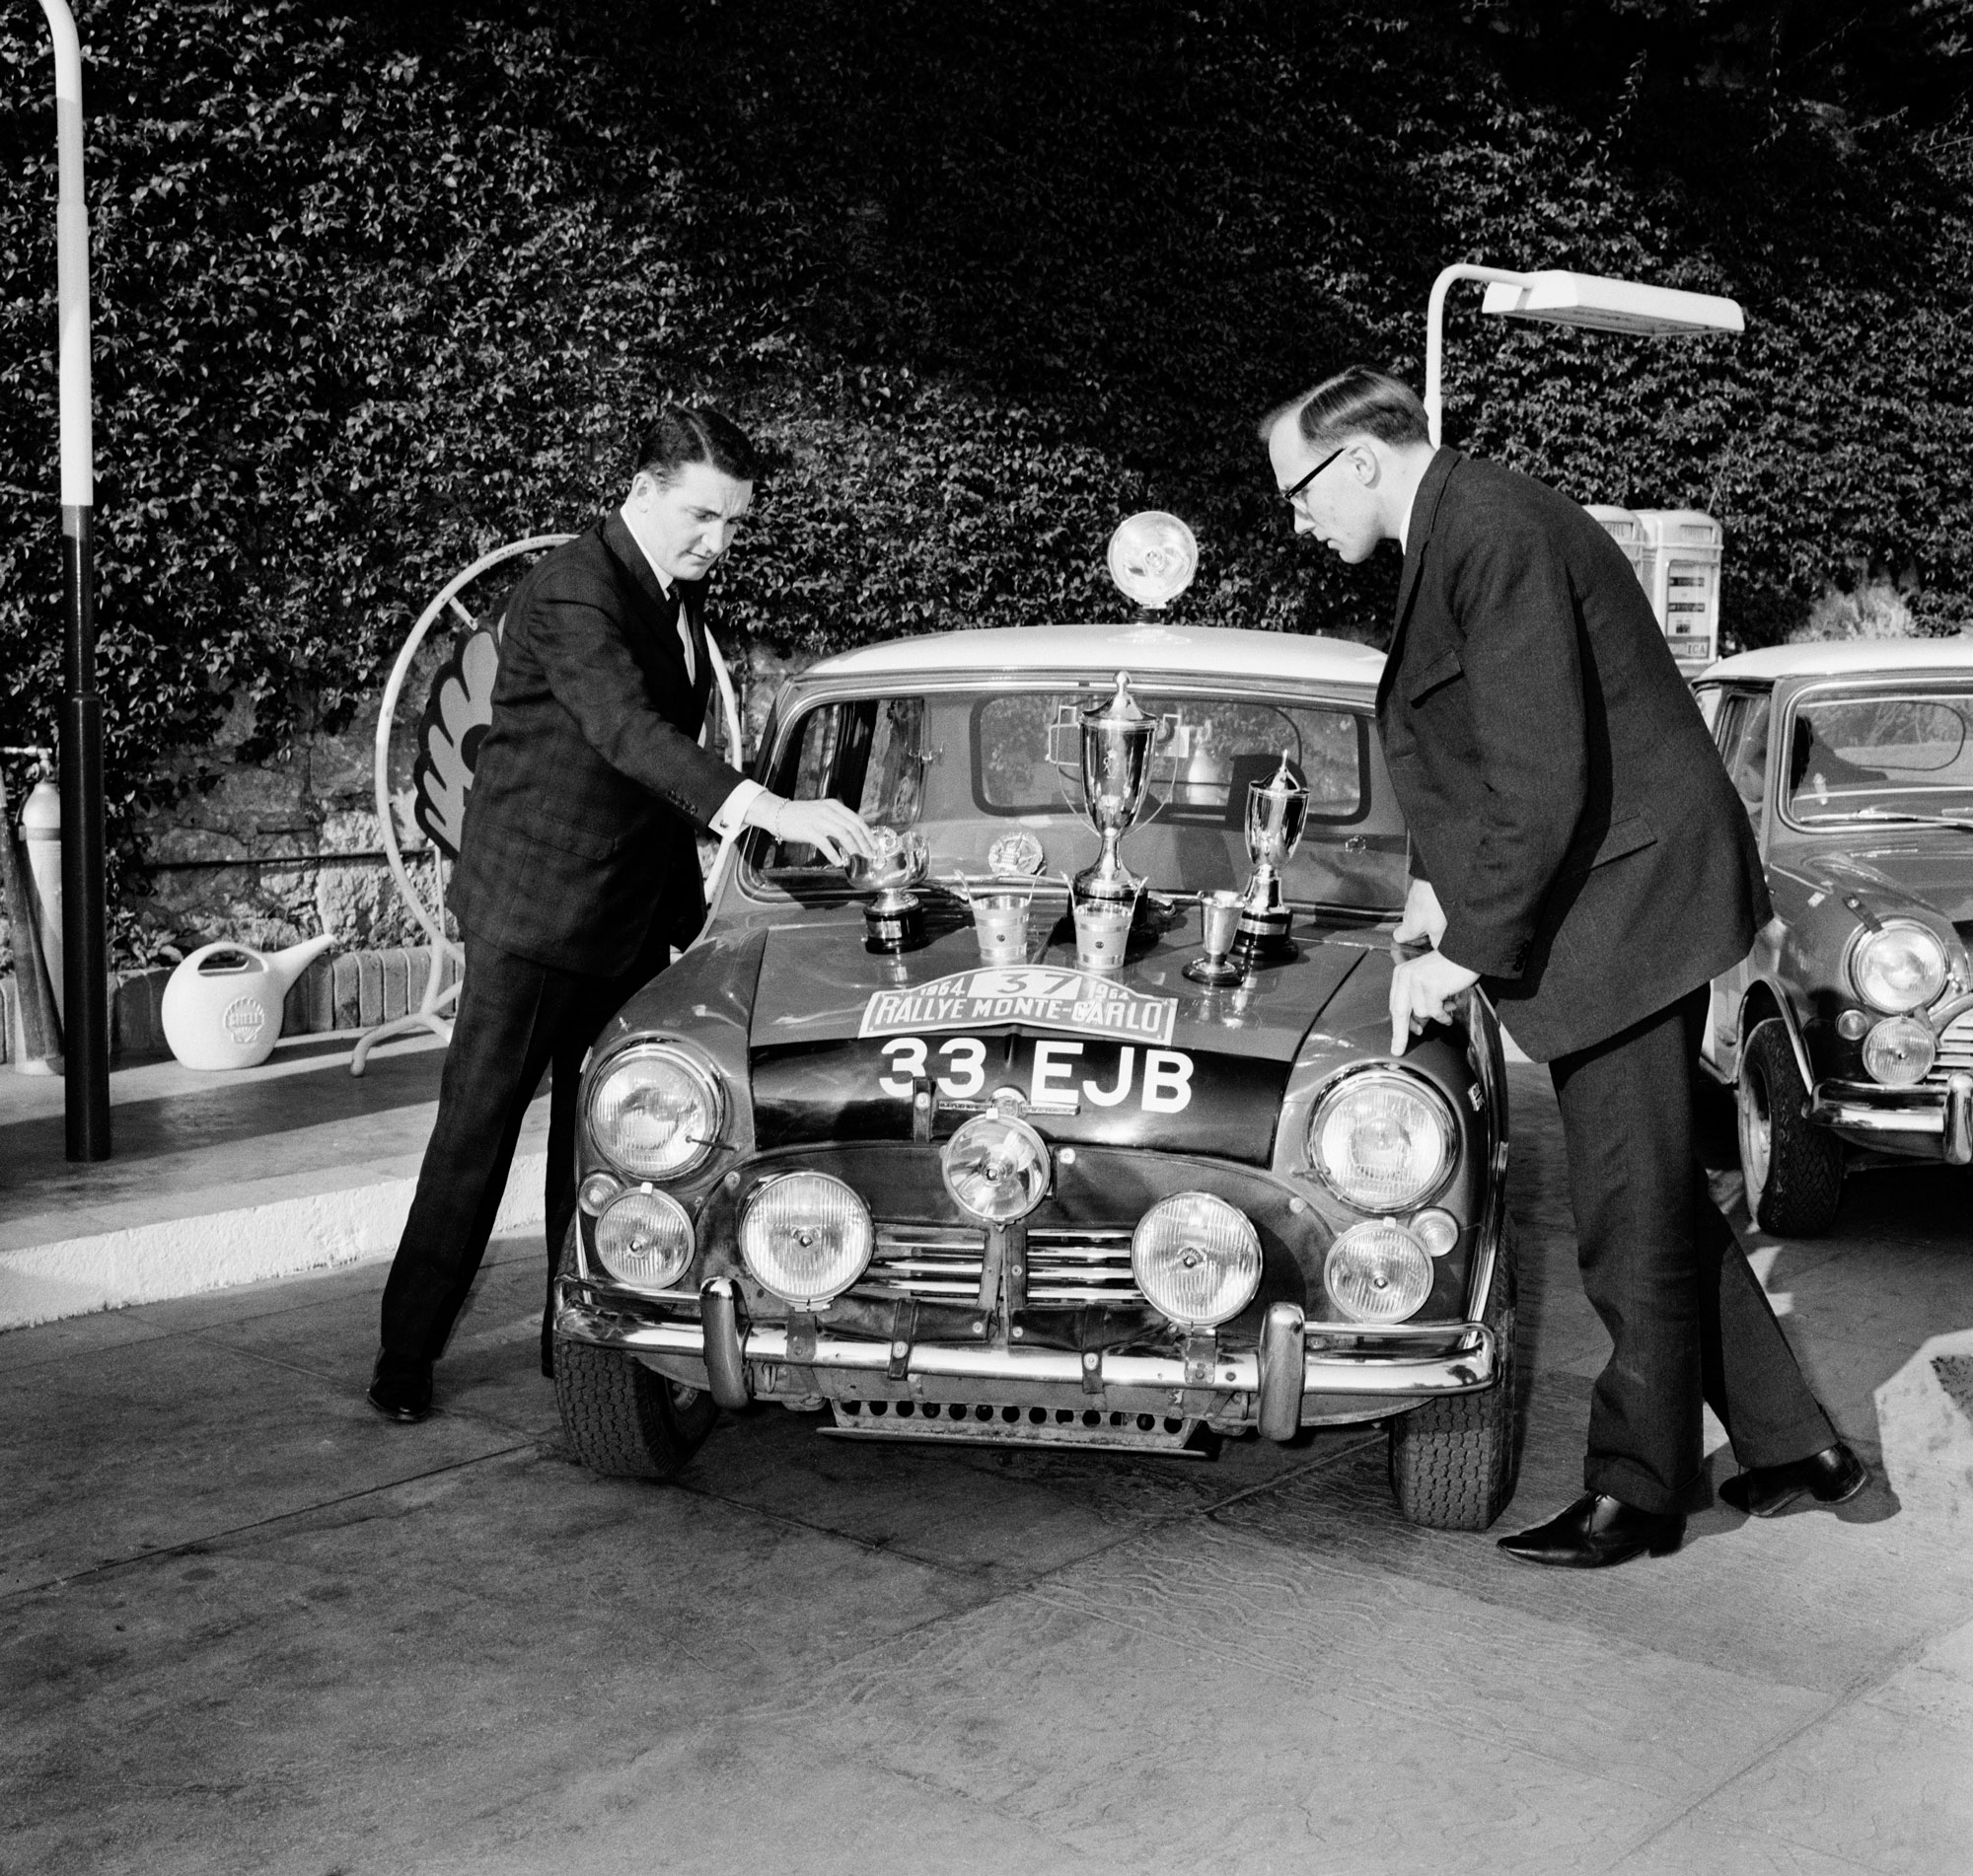 Paddy Hopkirk driving a Mini Cooper S in the 1964 Monte Carlo Rally